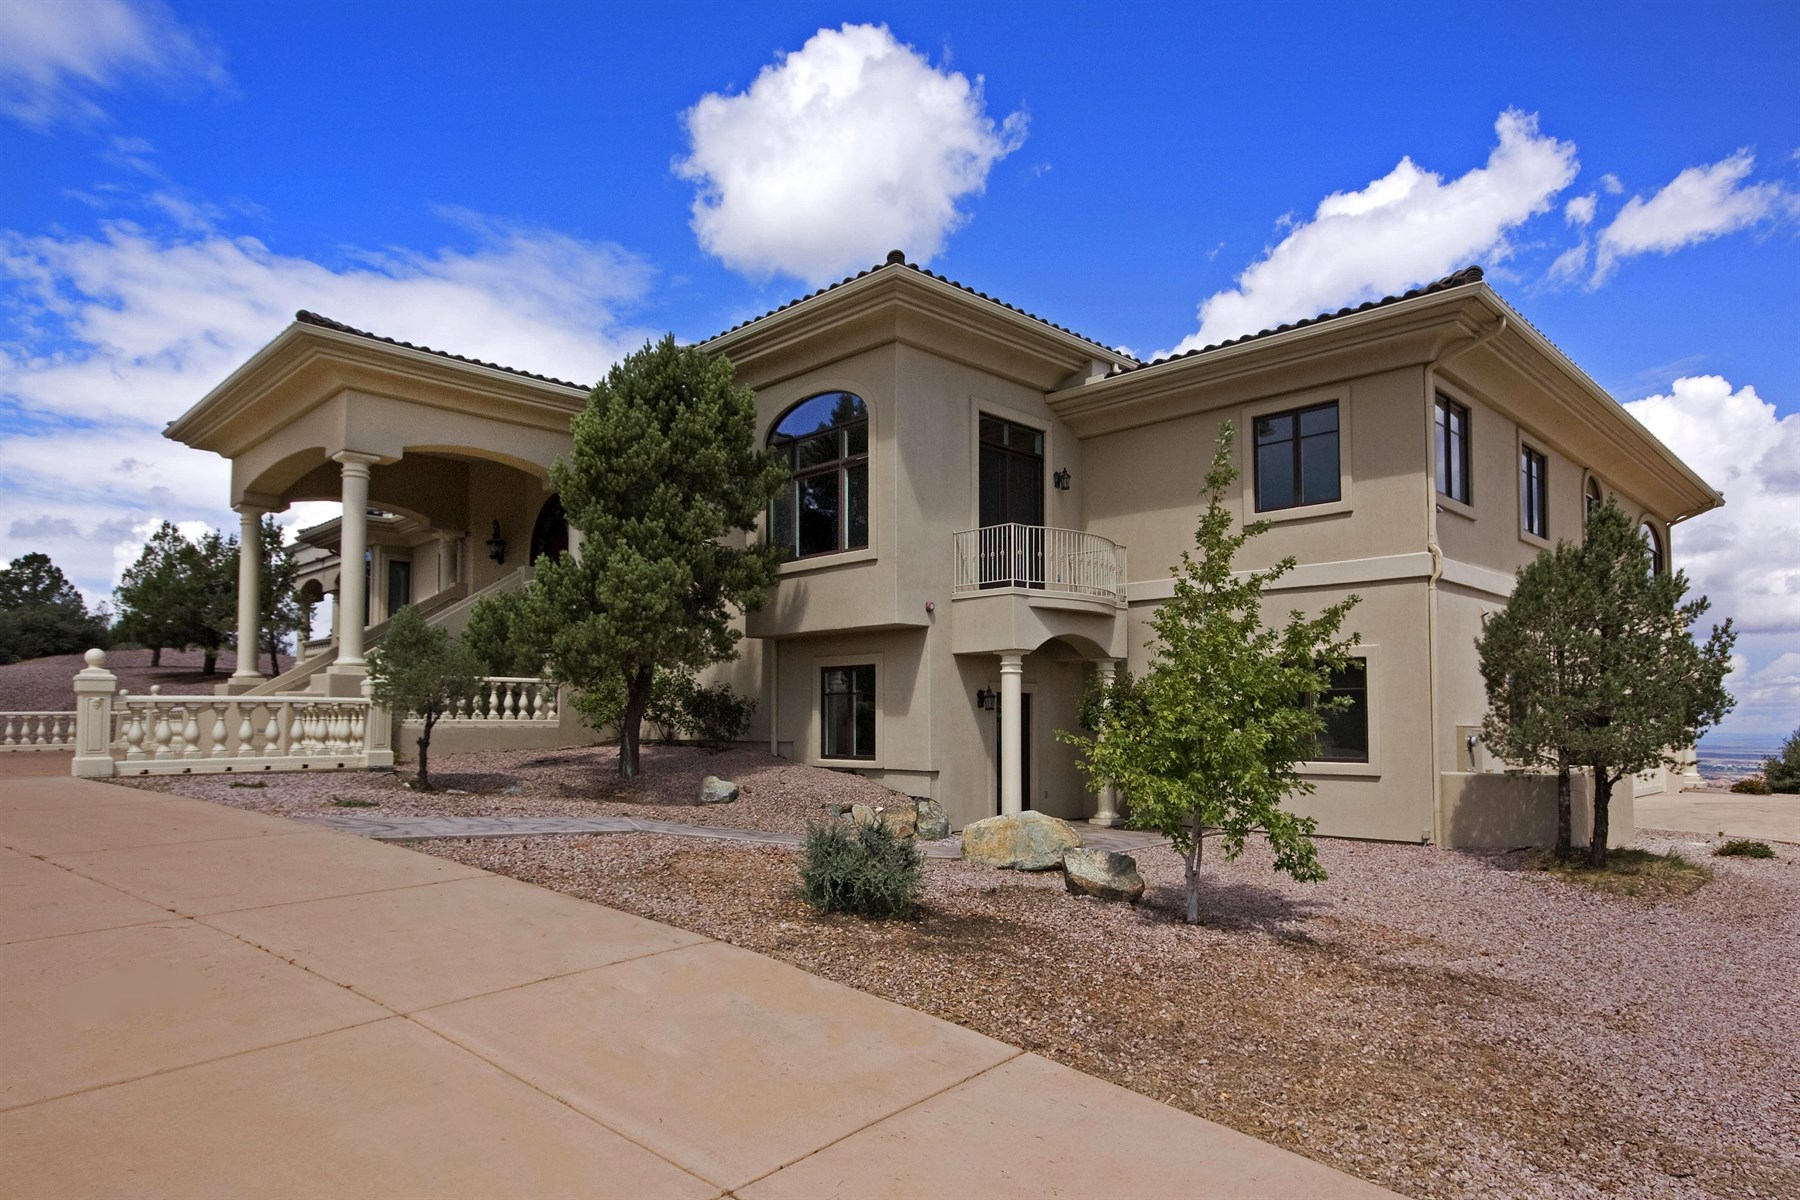 Single Family Home for Sale at Elegant-Spectacular Mansion 208 Echo Hills Prescott, Arizona, 86303 United States